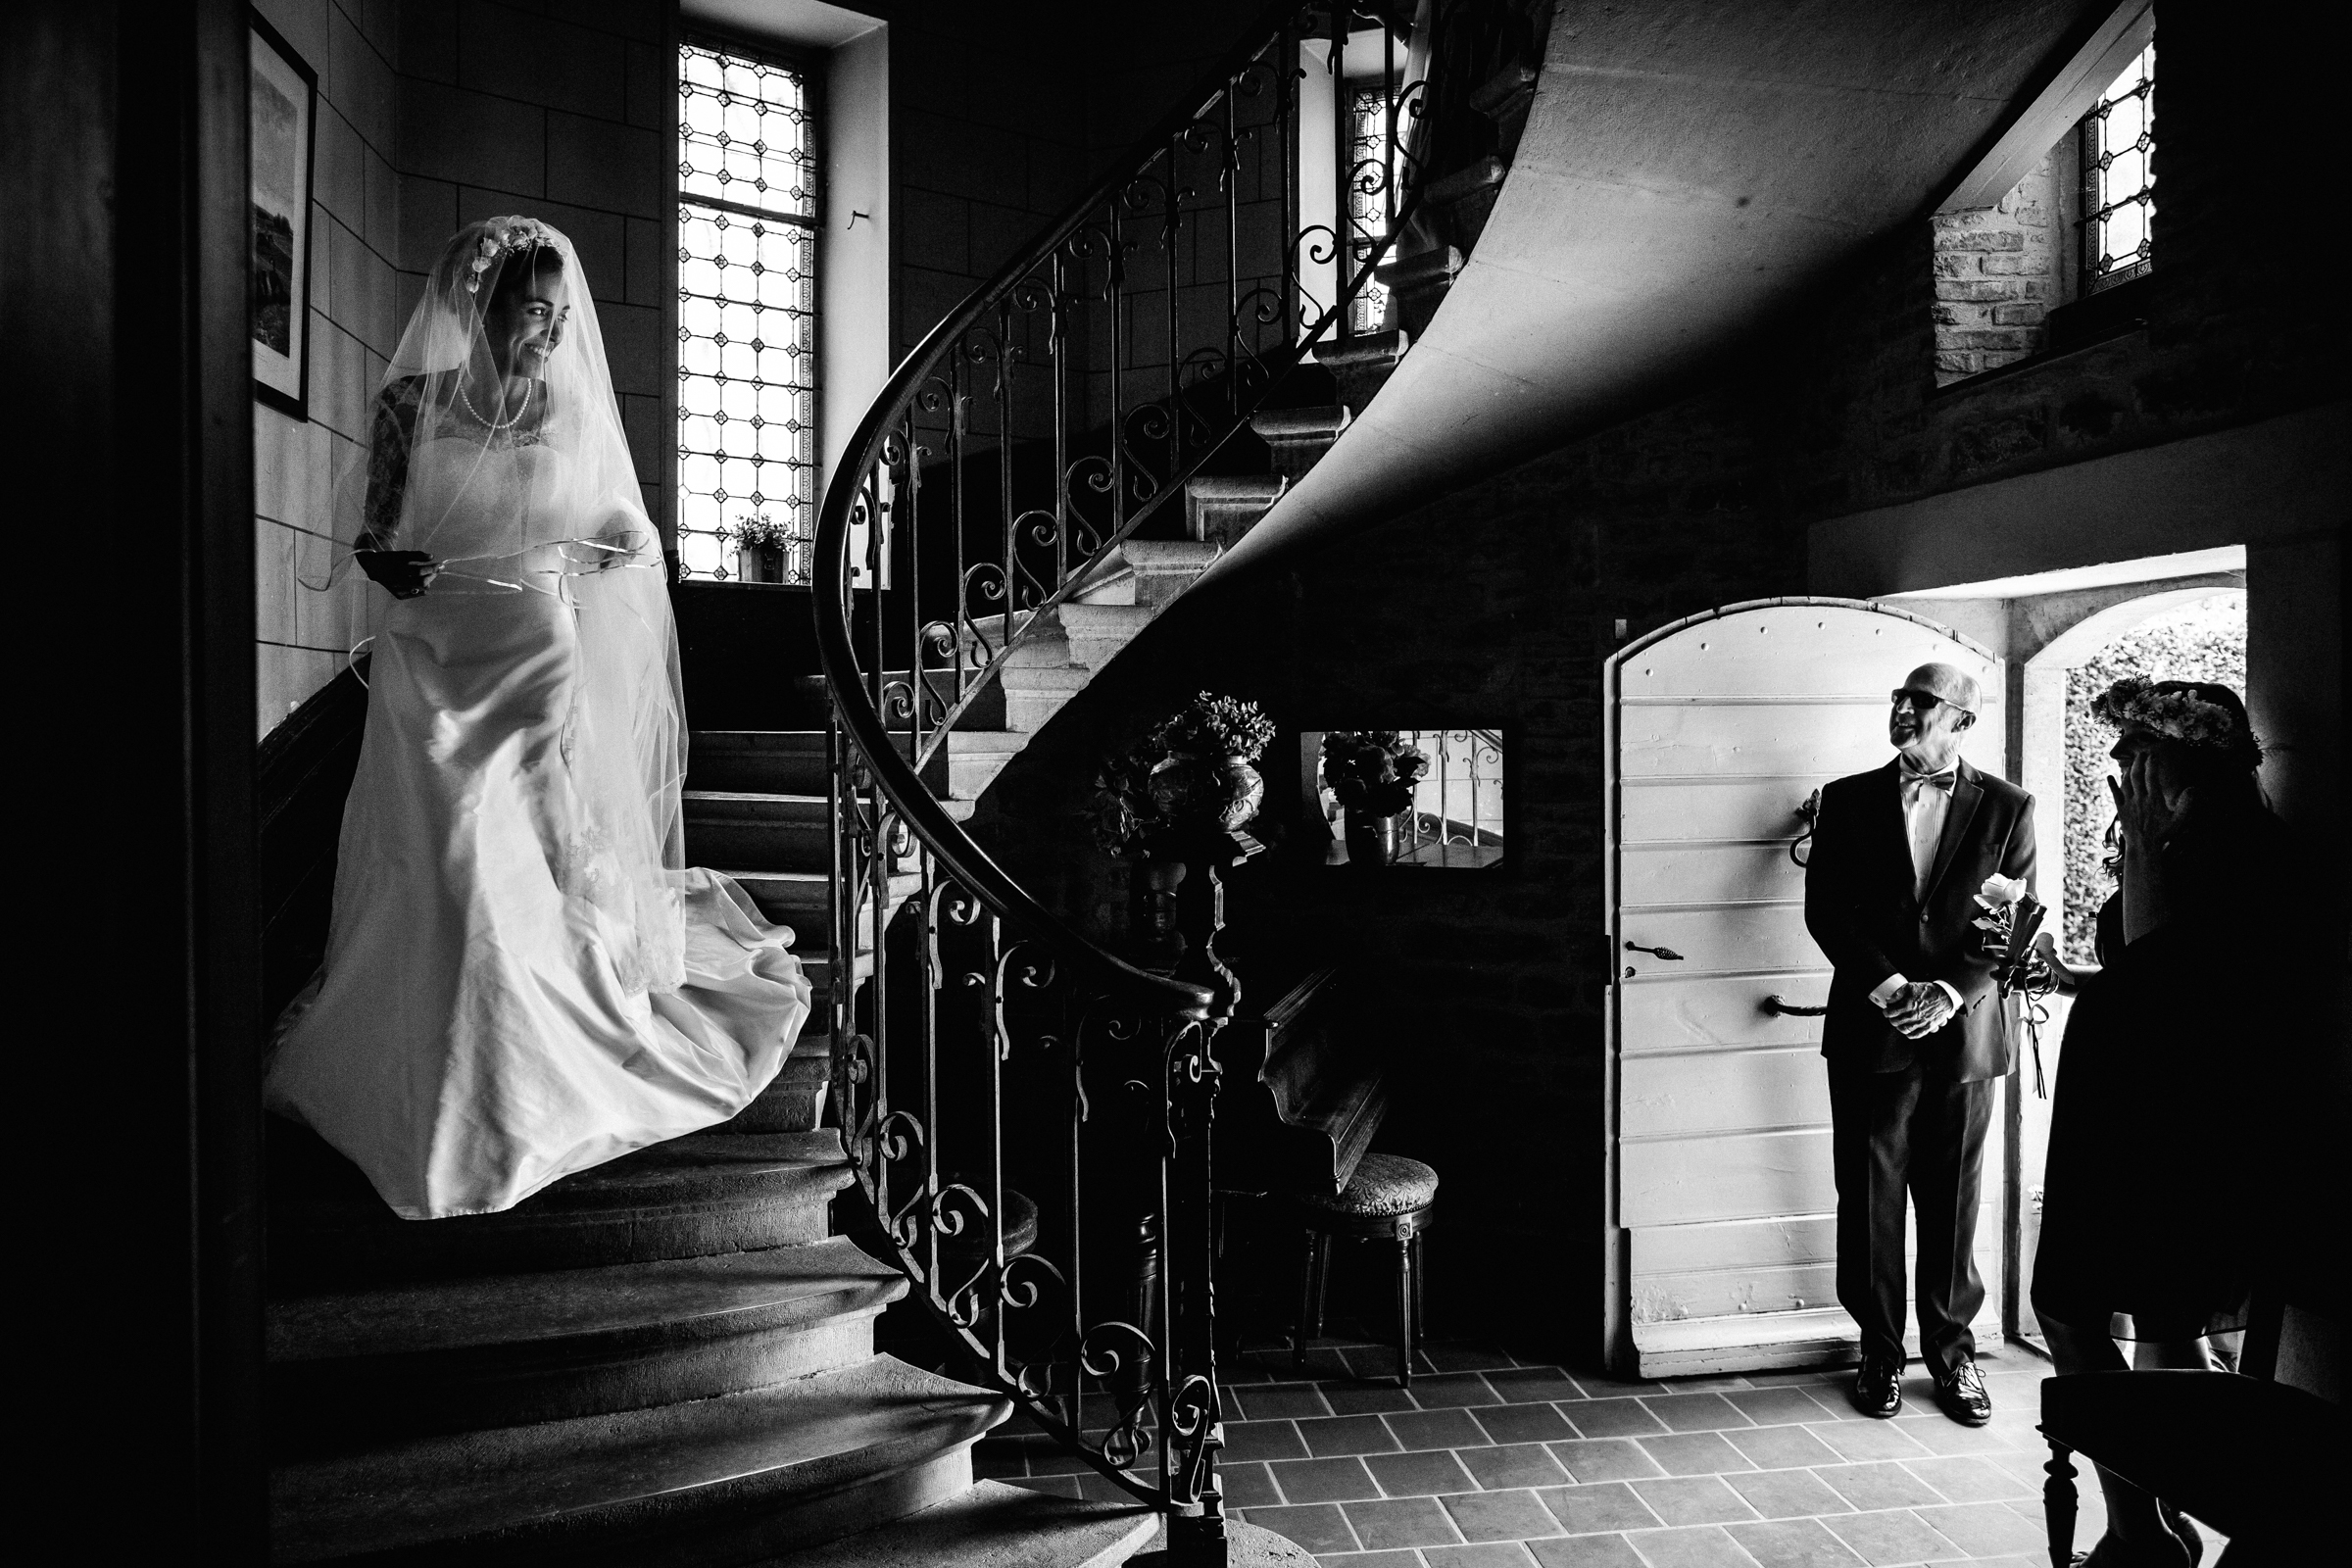 Veiled bride descends spiral staircase - photo by William Lambelet Photography